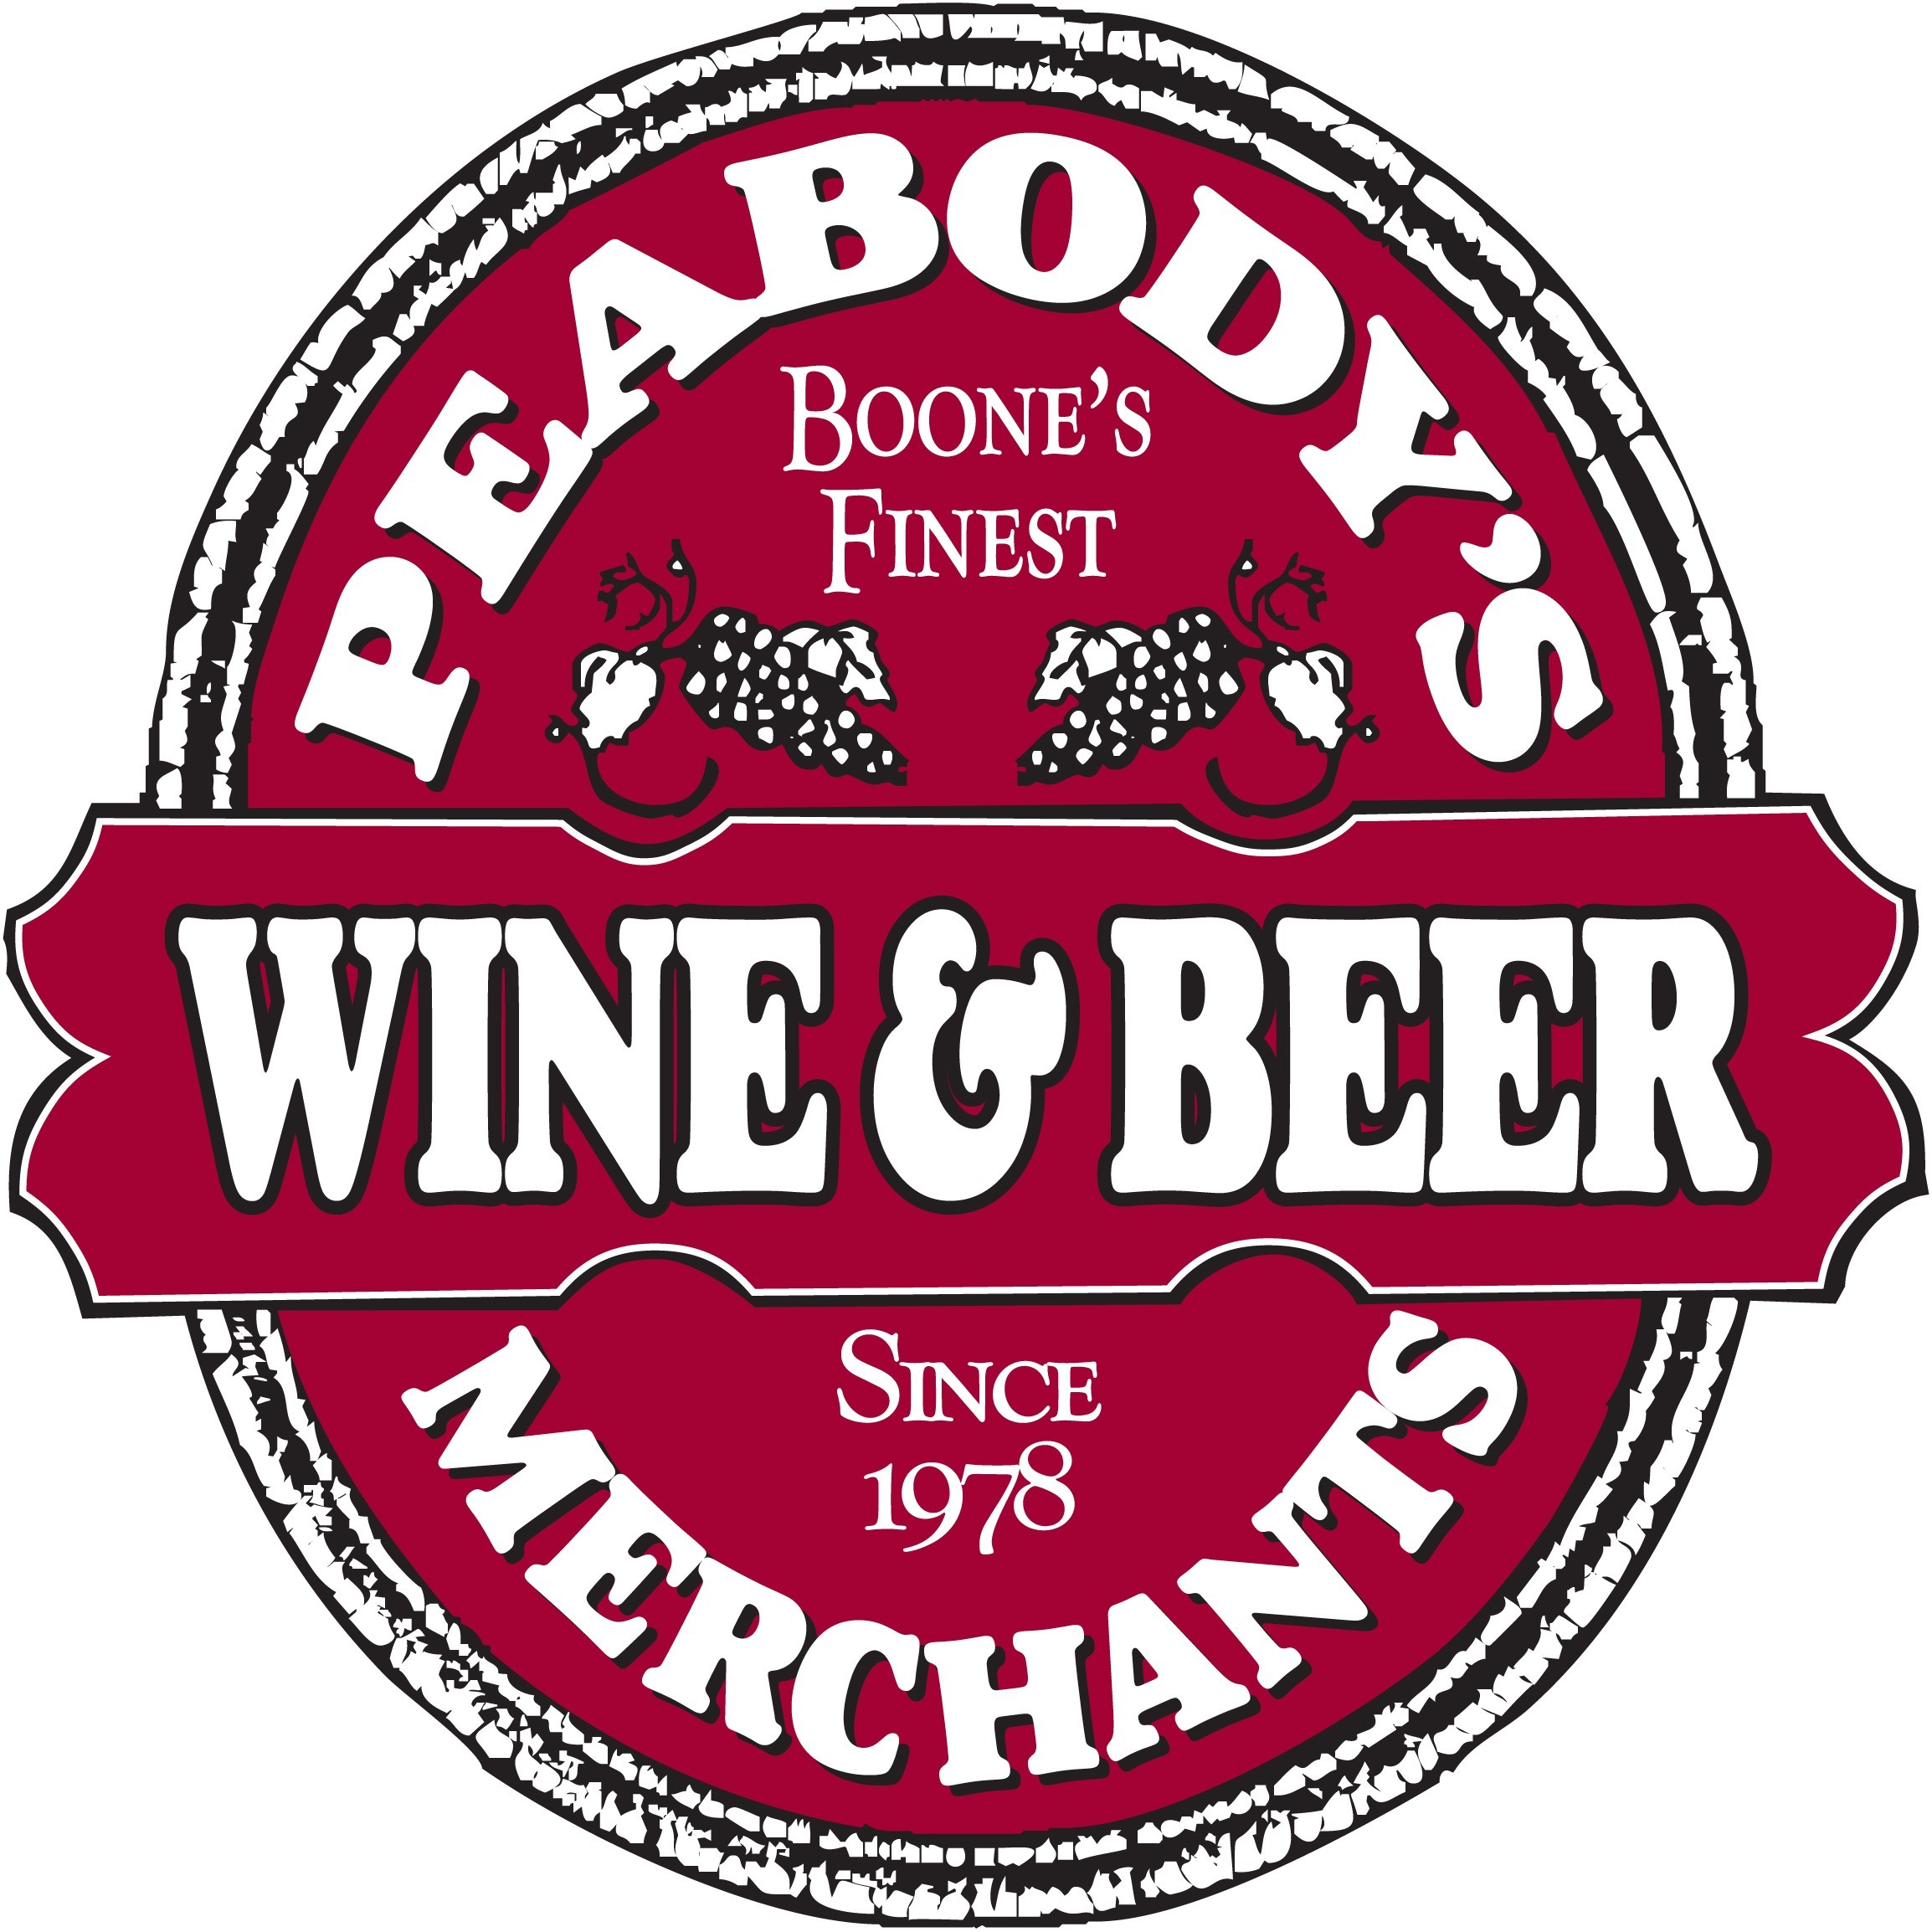 - High Country Beer Fest 2019 Ticket and Toilet Sponsor: Peabody's Wine & Beerhttp://www.peabodyswineandbeer.com/